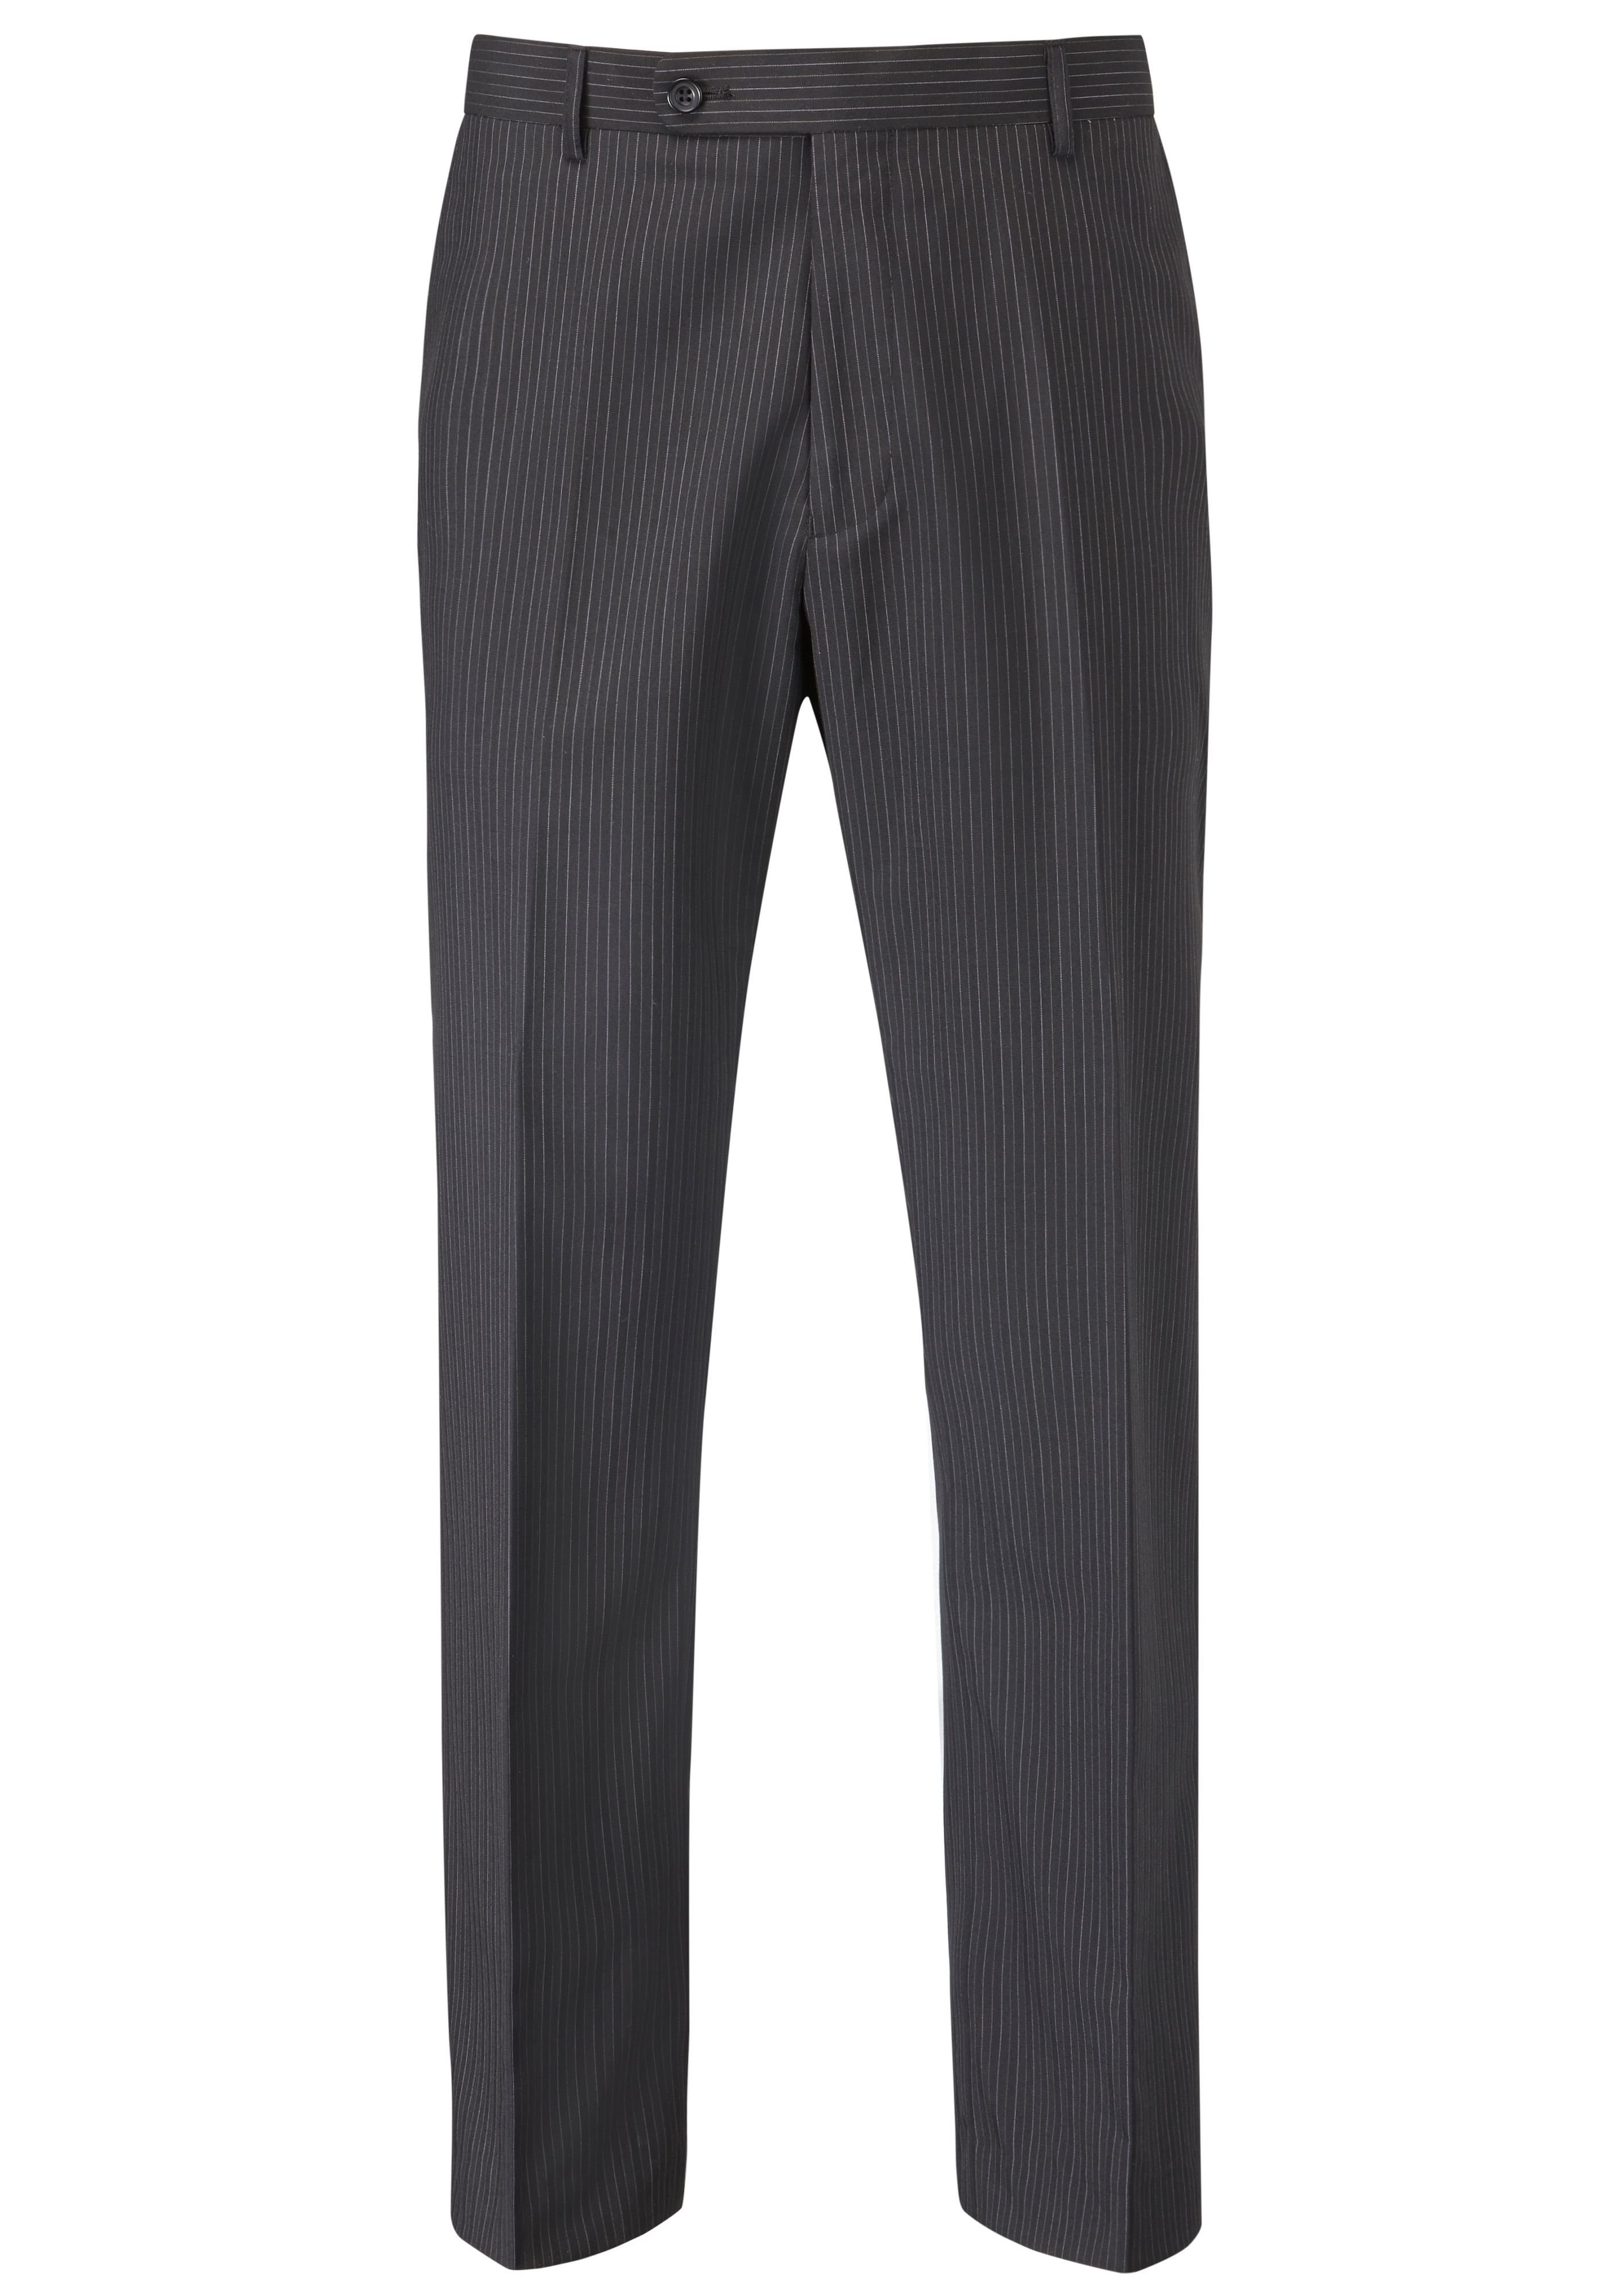 Tring stripe formal suit trousers